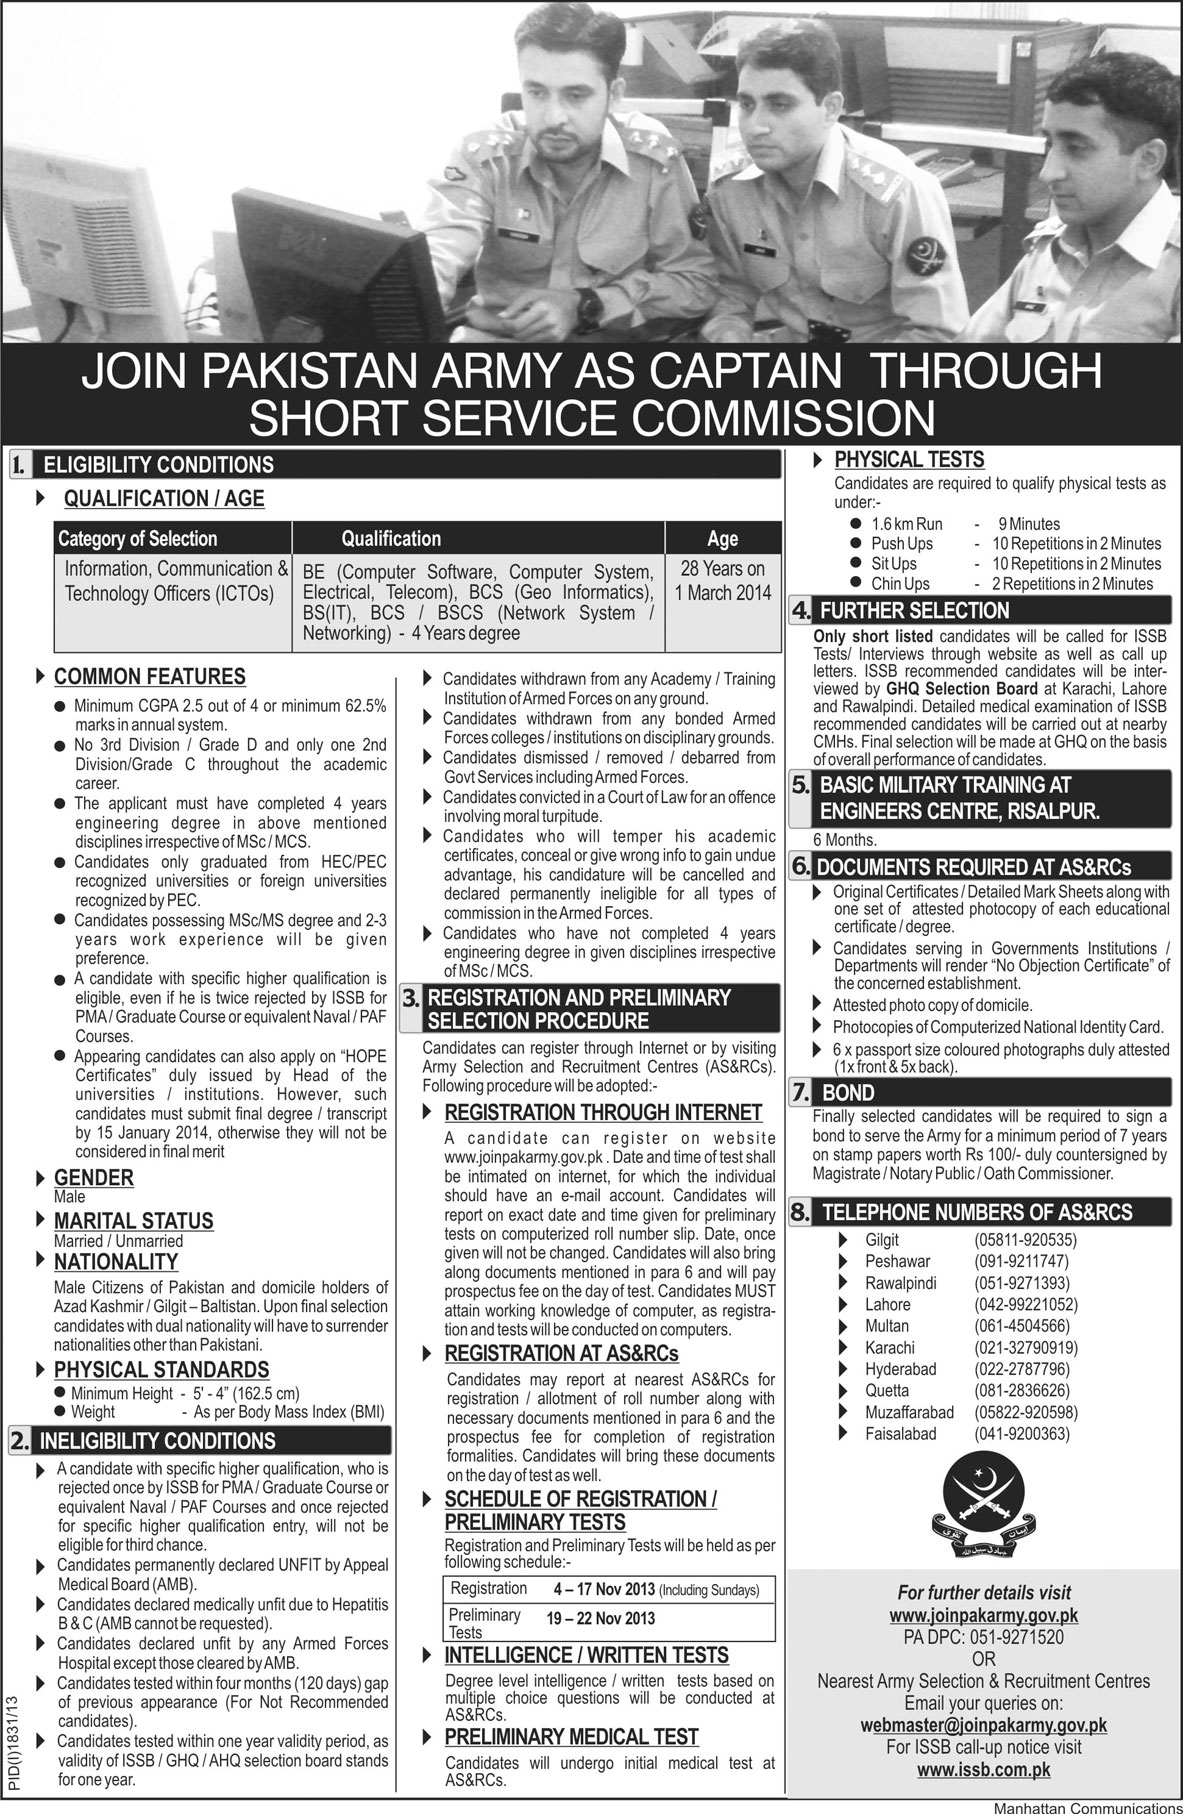 Icto Pakistan Army 2013 November Join As Captain Through